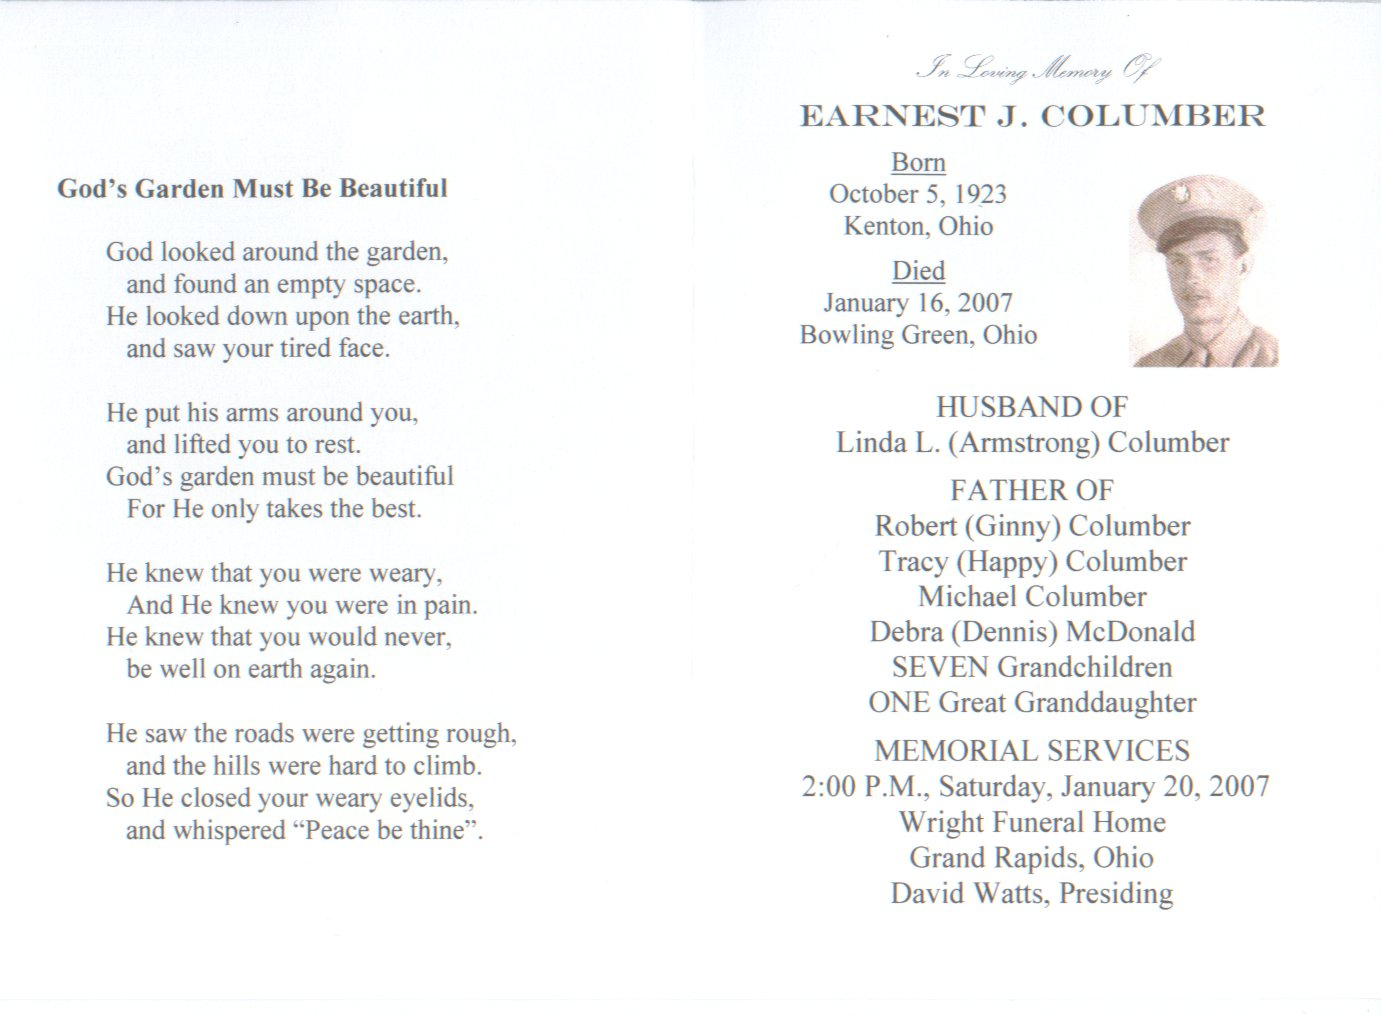 In Loving Memory of Ernest J. Columber